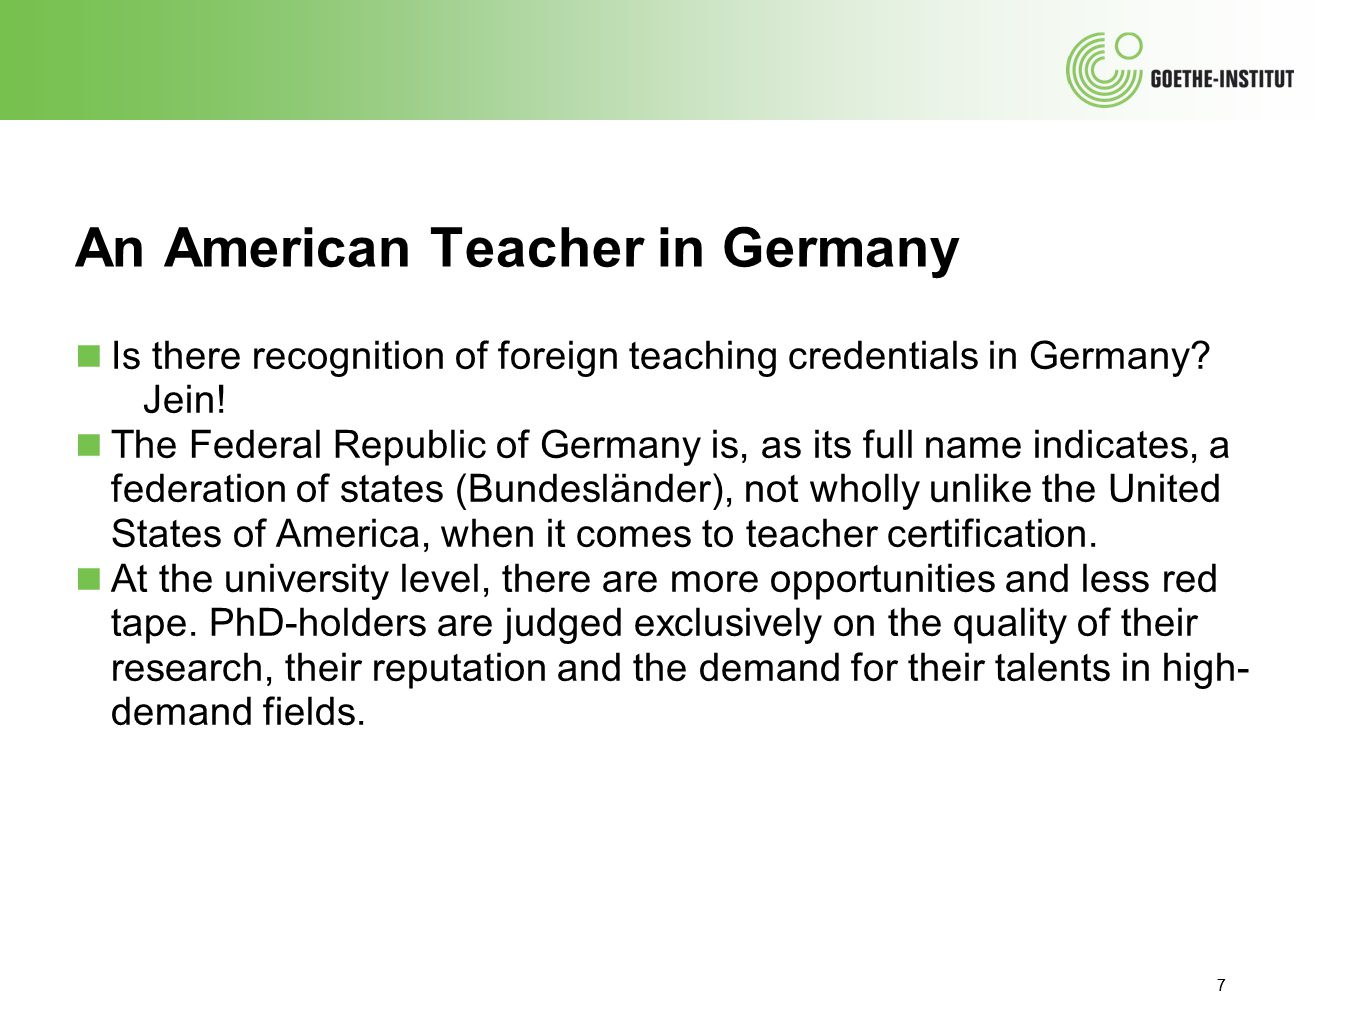 7 An American Teacher in Germany ■ Is there recognition of foreign teaching credentials in Germany? Jein! ■ The Federal Republic of Germany is, as its